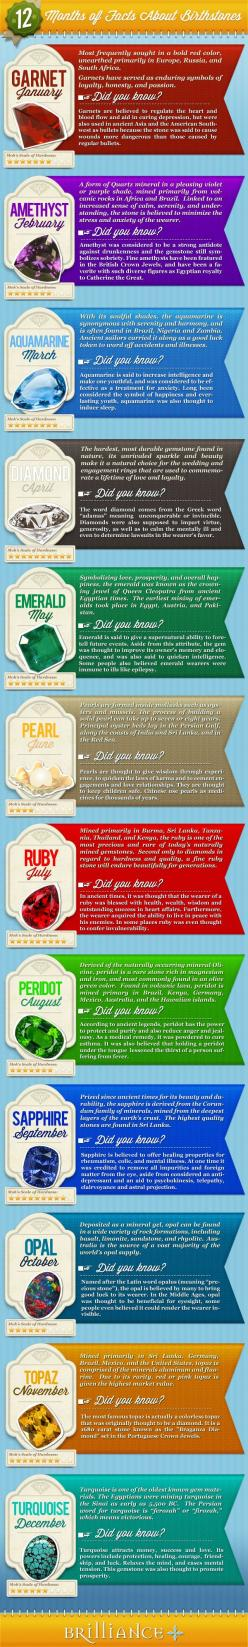 Month by month facts about each birthstone: Gemstones, 12 Months, Month Infographic, Crystals Stones, Emerald, Birthstone Infographic, Birthstones Infographic, Birthstone Facts, Birth Stones